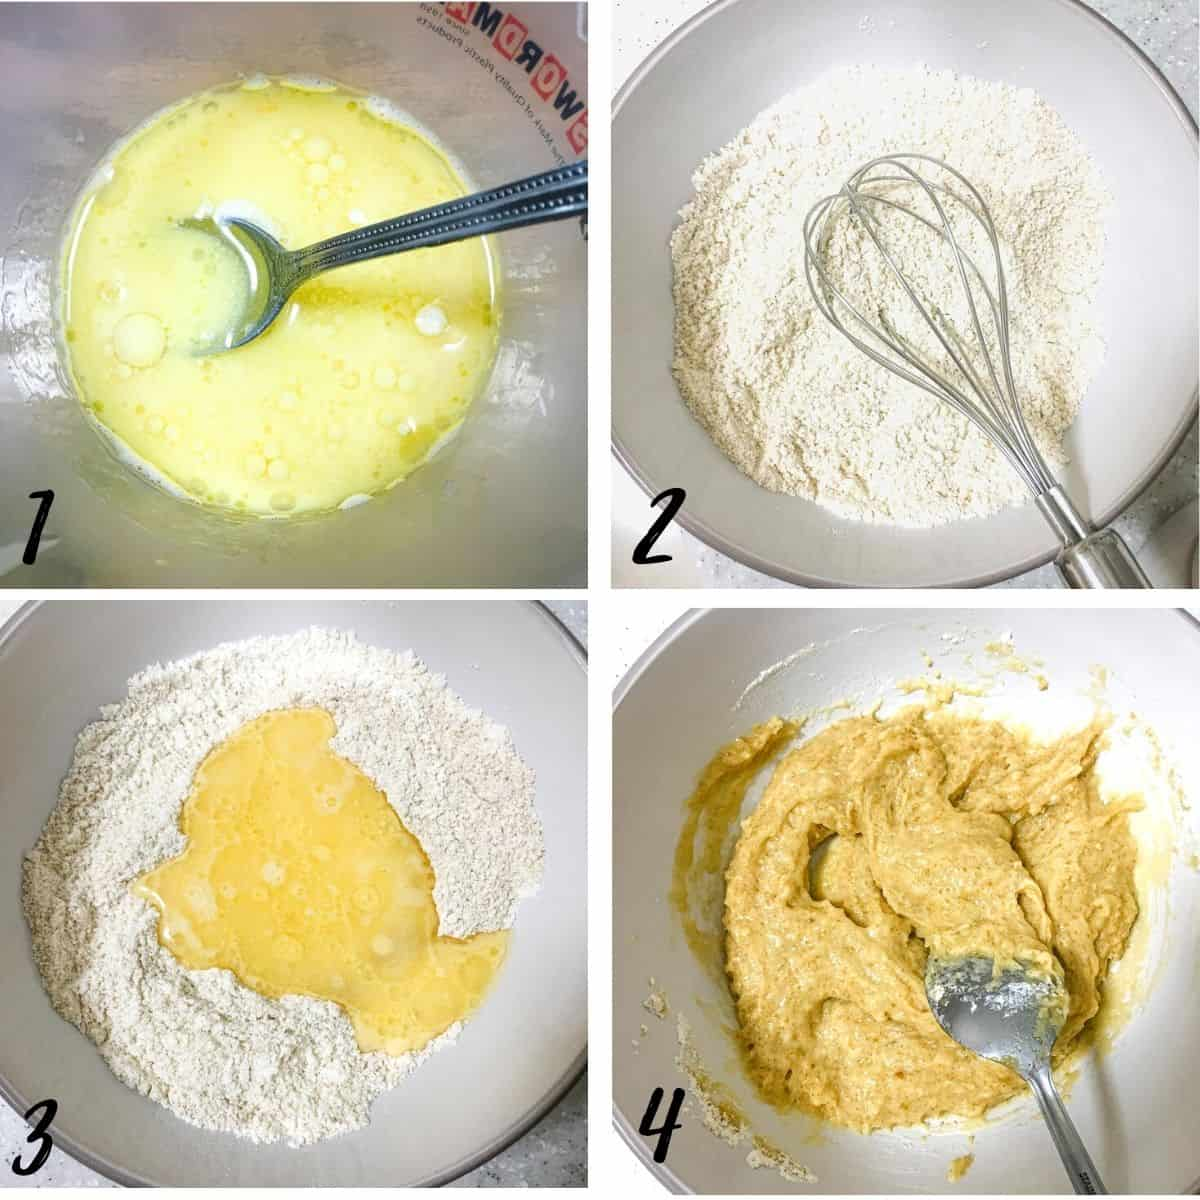 A poster of 4 images showing how to make cinnamon streusel muffins